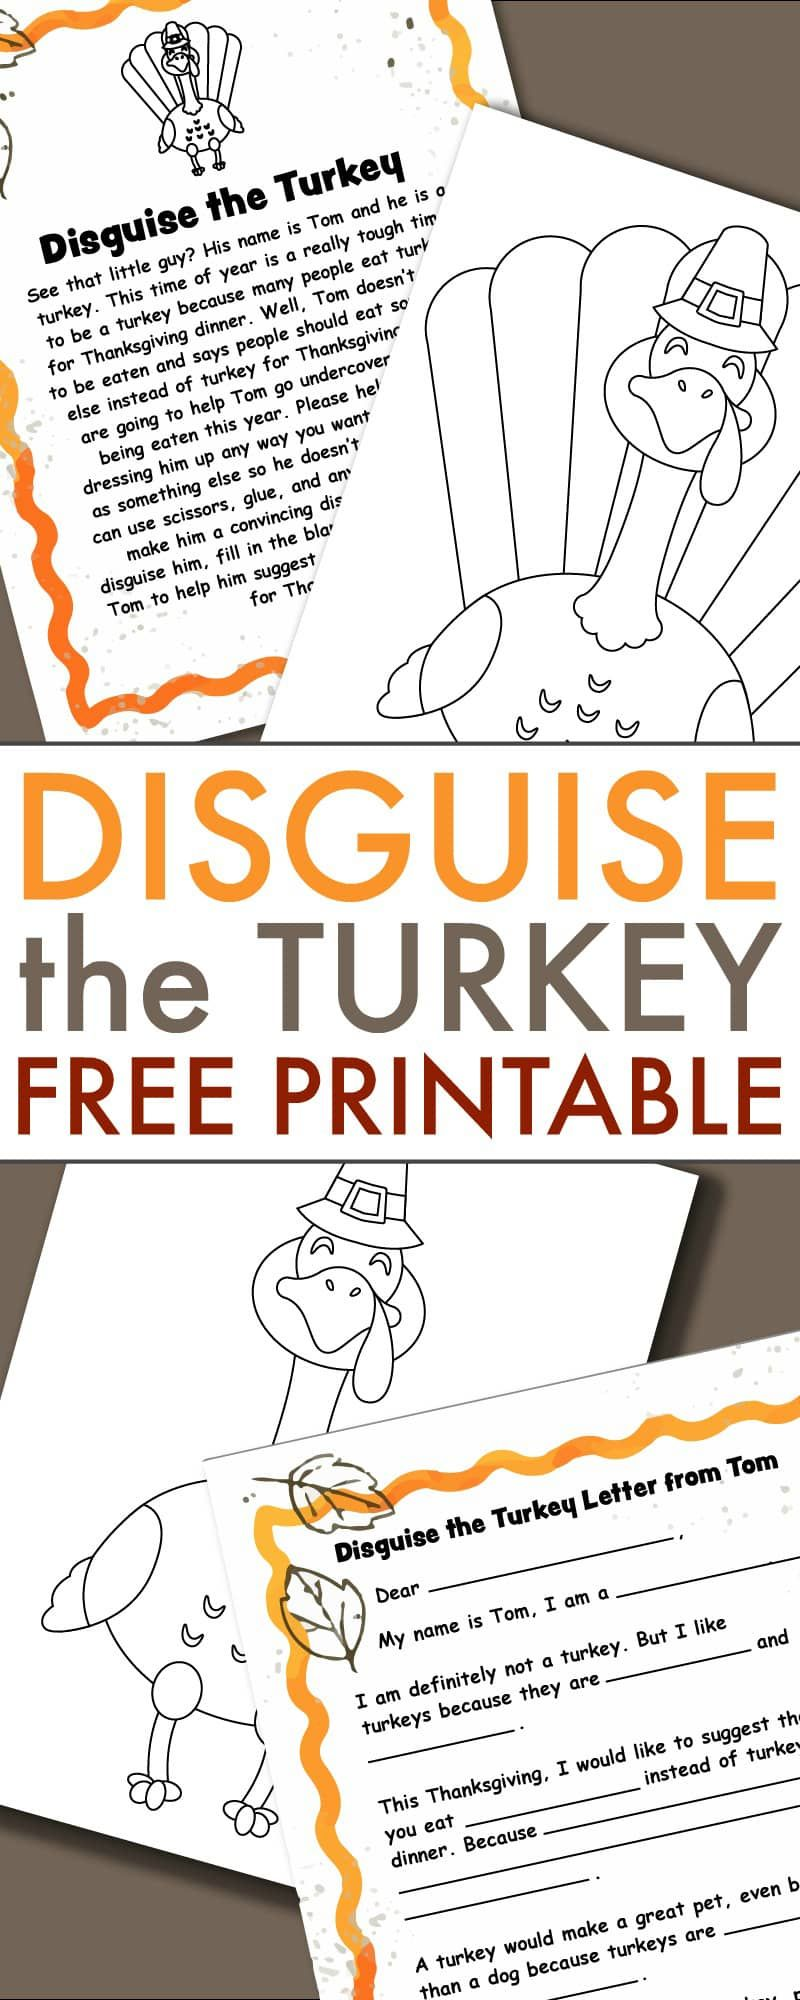 A Turkey In Disguise Project Free Printable Template 730 Sage Street Turkey Disguise Thanksgiving Activities For Kids Thanksgiving Templates